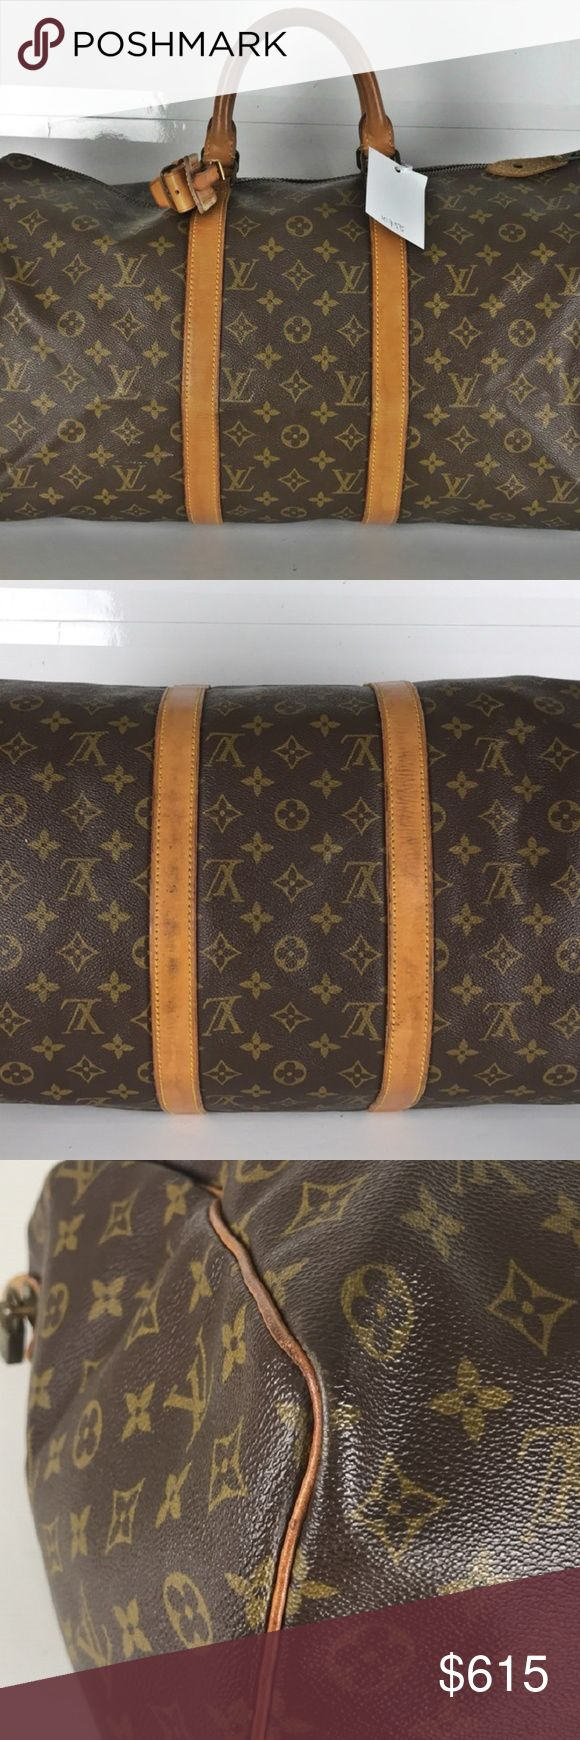 Louis Vuitton Keepall 50 Monogram Travel Bag 10755 (Outside Flaws) Minor rubs wrinkles and some stains on the leather parts.  (Handle) Minor rubs on the whole parts. Minor spots on a part of handle.  (Bottom) Minor scratches and stains on the leather of the bottom parts.   (Inside Flaws) Minor rubs and wrinkles on the leather parts. Zipper works properly  (Metal parts Flaws) Minor scratches on the almost of all metal parts.  Height: 11.4 Width: 19.6 Depth: 8.66 Handle: 12.99  Code etc: SD…